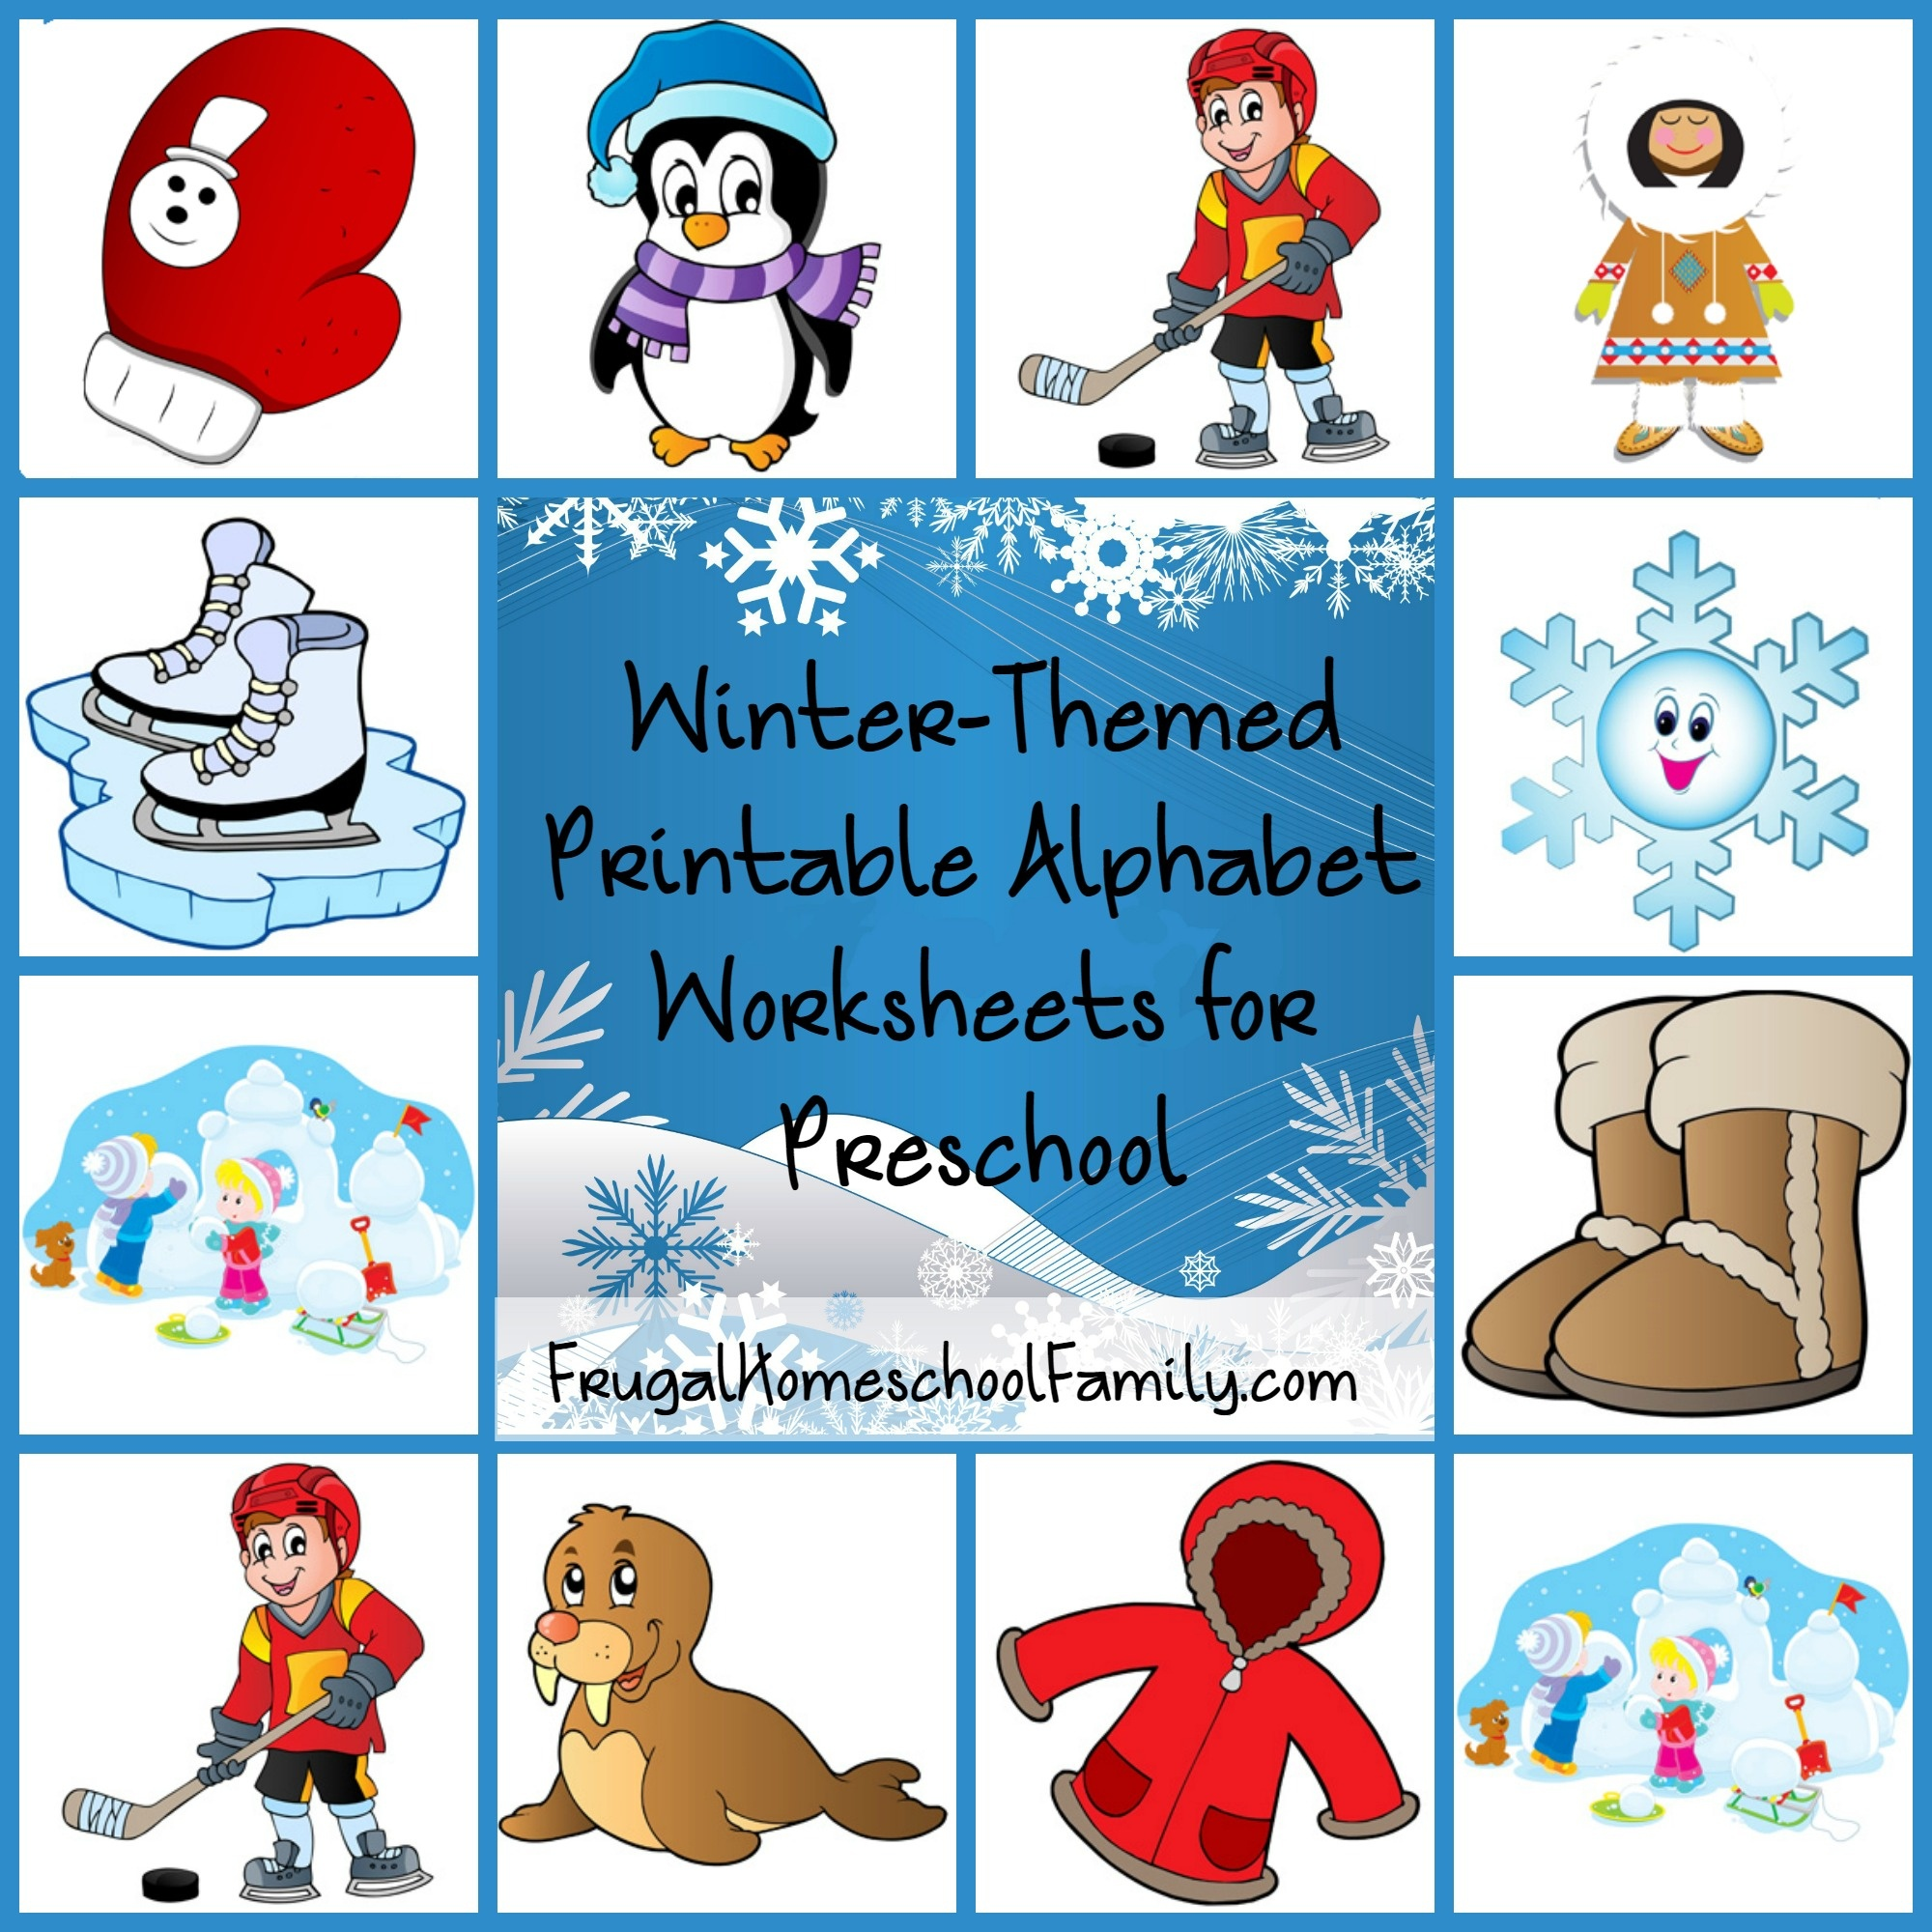 Free Winter-Themed Printable Alphabet Worksheets For Preschool - Free Printable Winter Preschool Worksheets